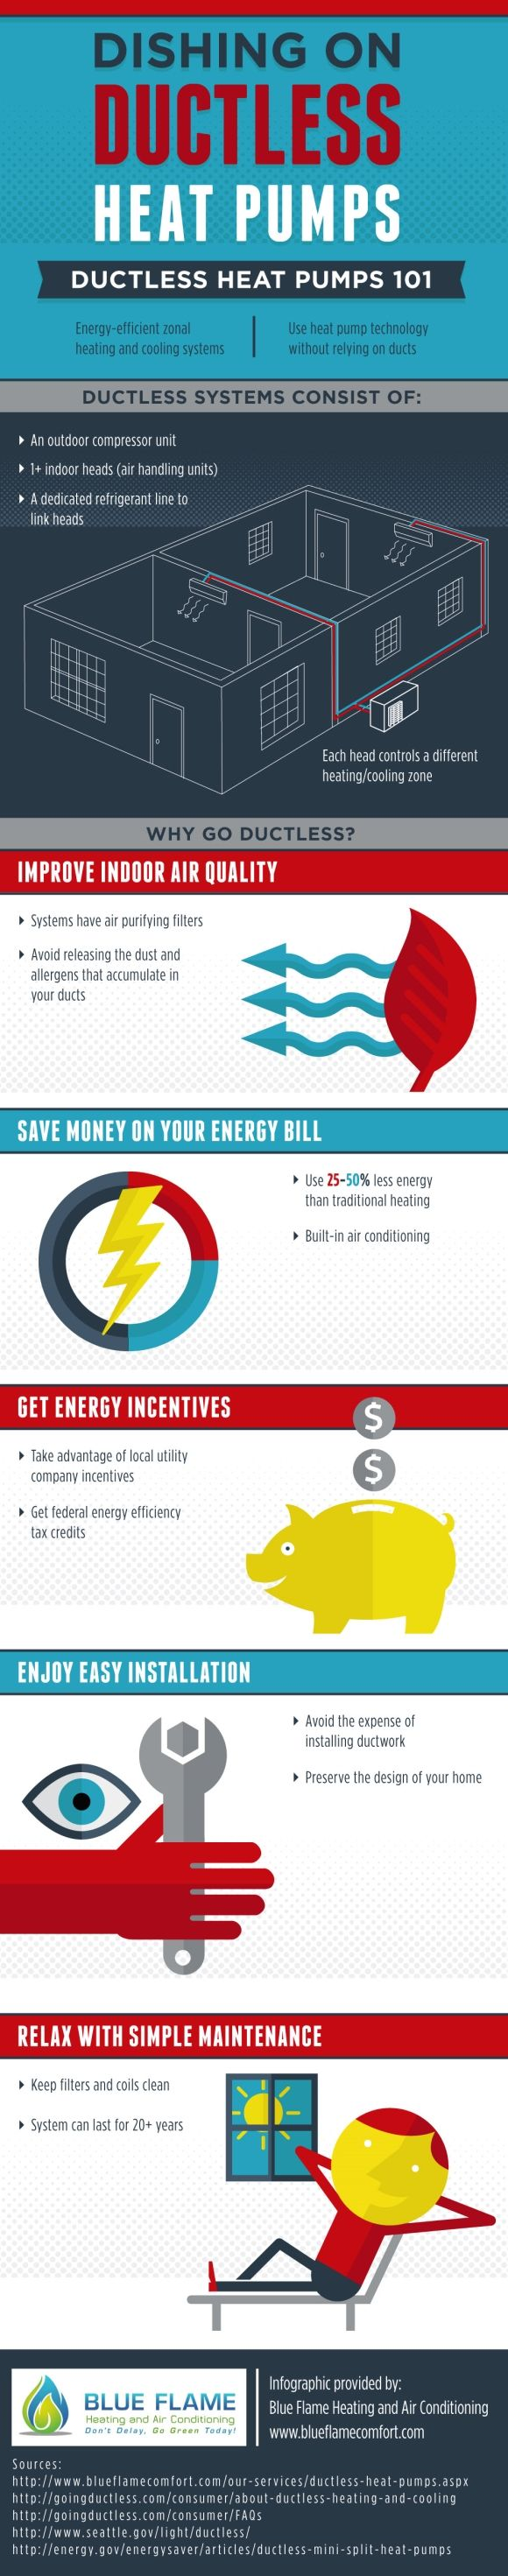 Dishing On Ductless Heat Pumps Infographic Ductless Heat Pump